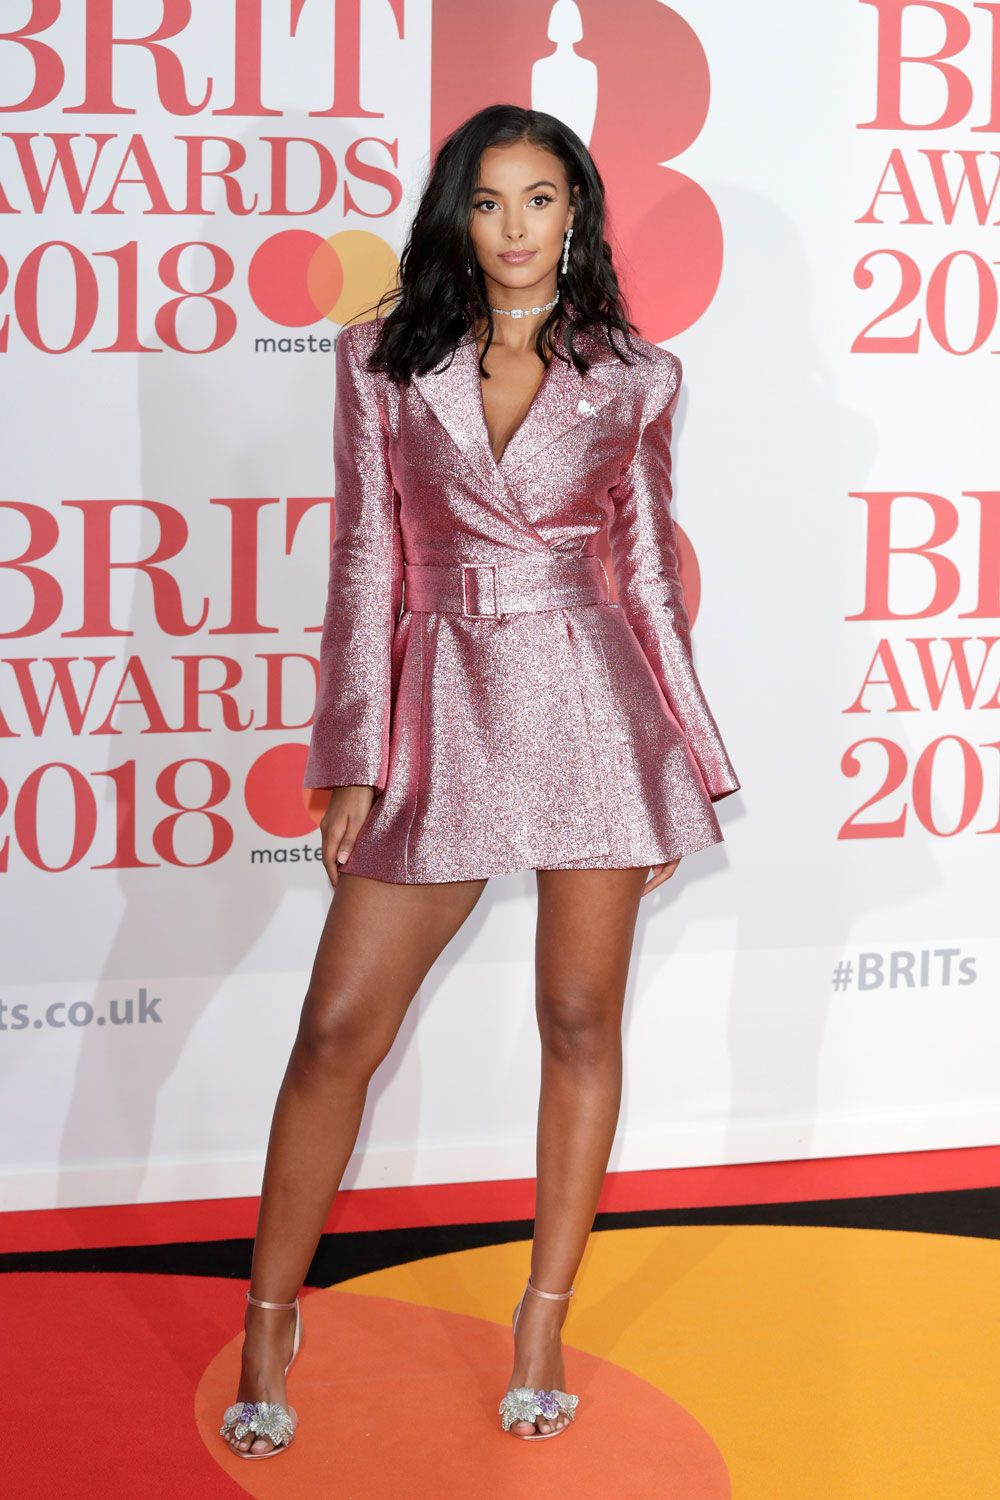 The Brits Red Carpet in Brief: Thighs, Nighties and Jumbo Dresses